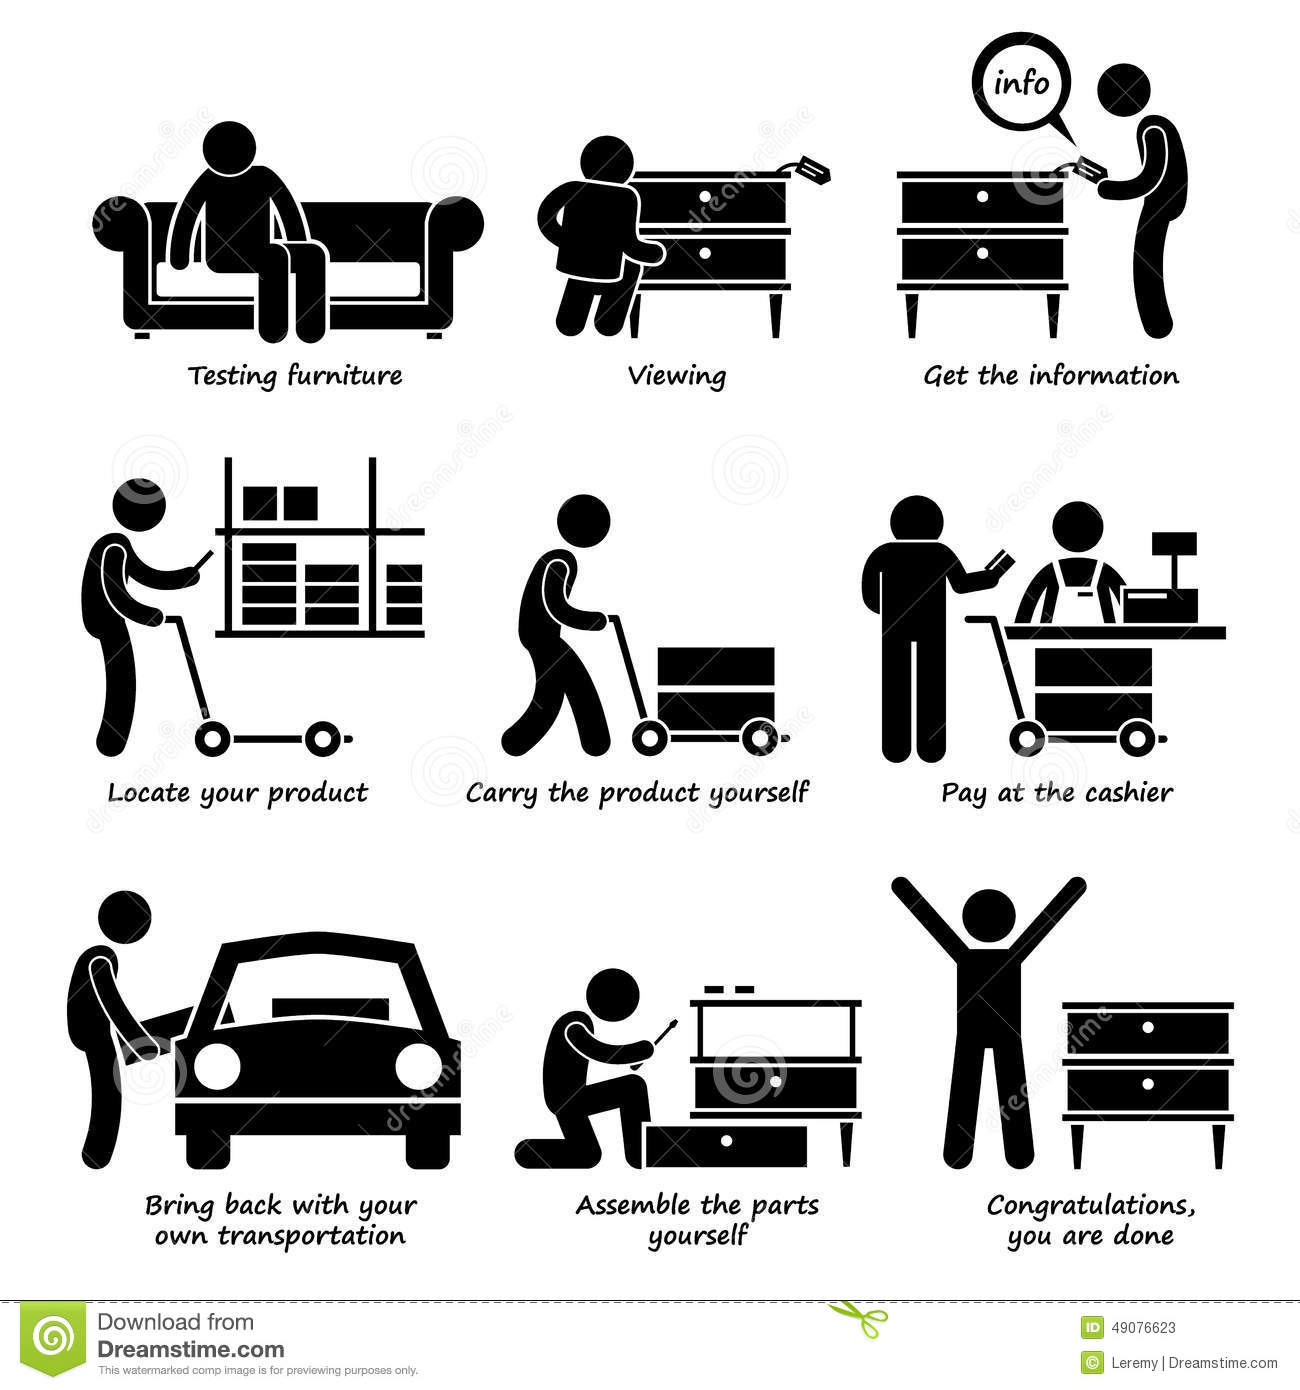 Where To Buy Furniture You Assemble Yourself